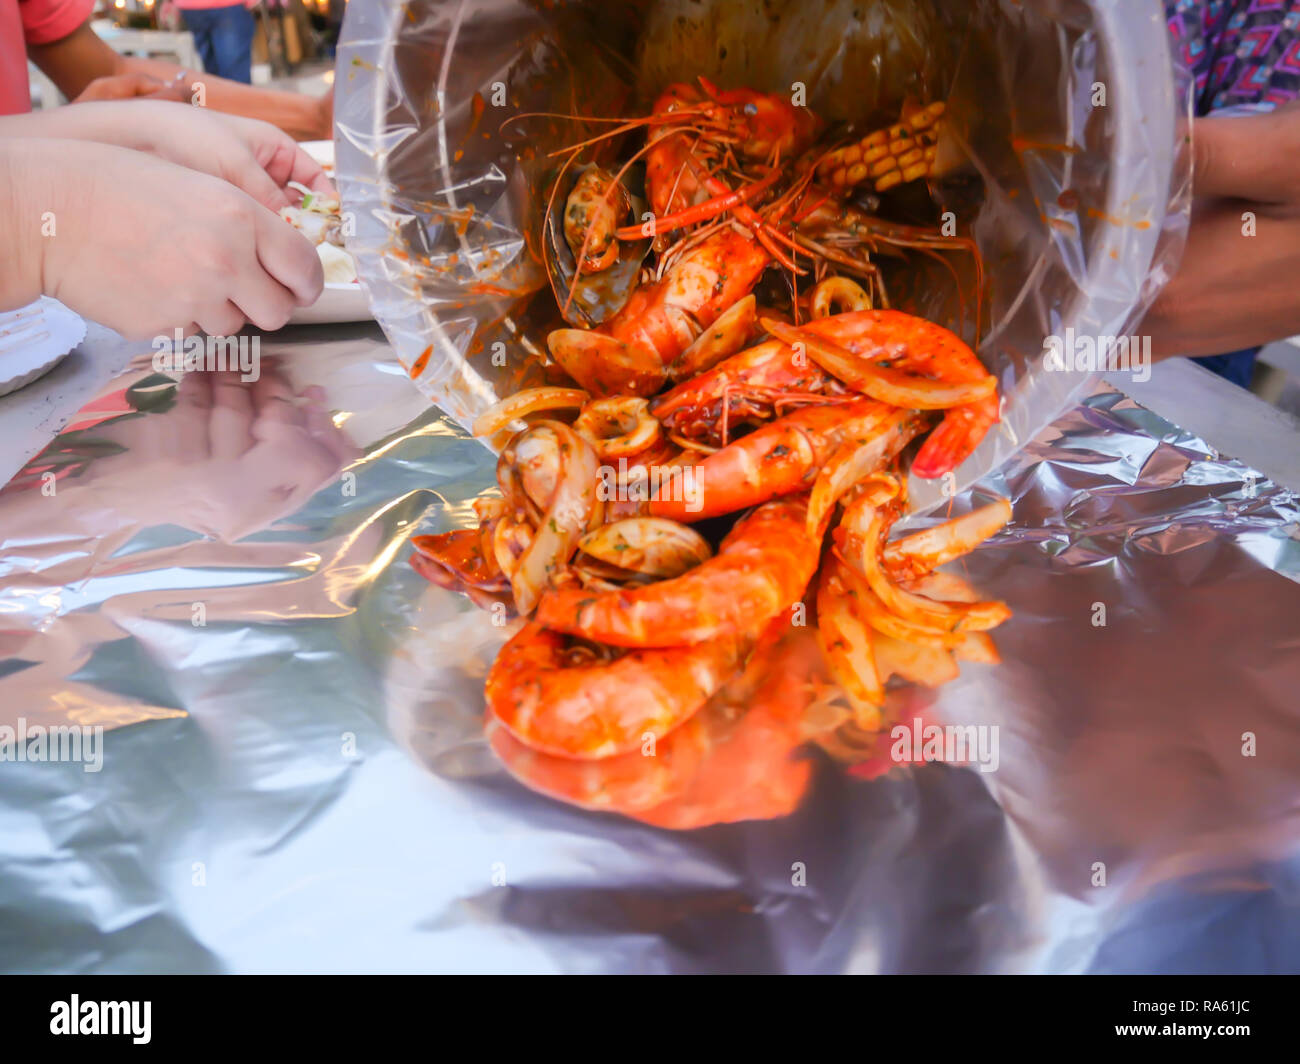 Shrimp Tank and mixed spicy seafood, Holy shrimp Tank street food - Stock Image